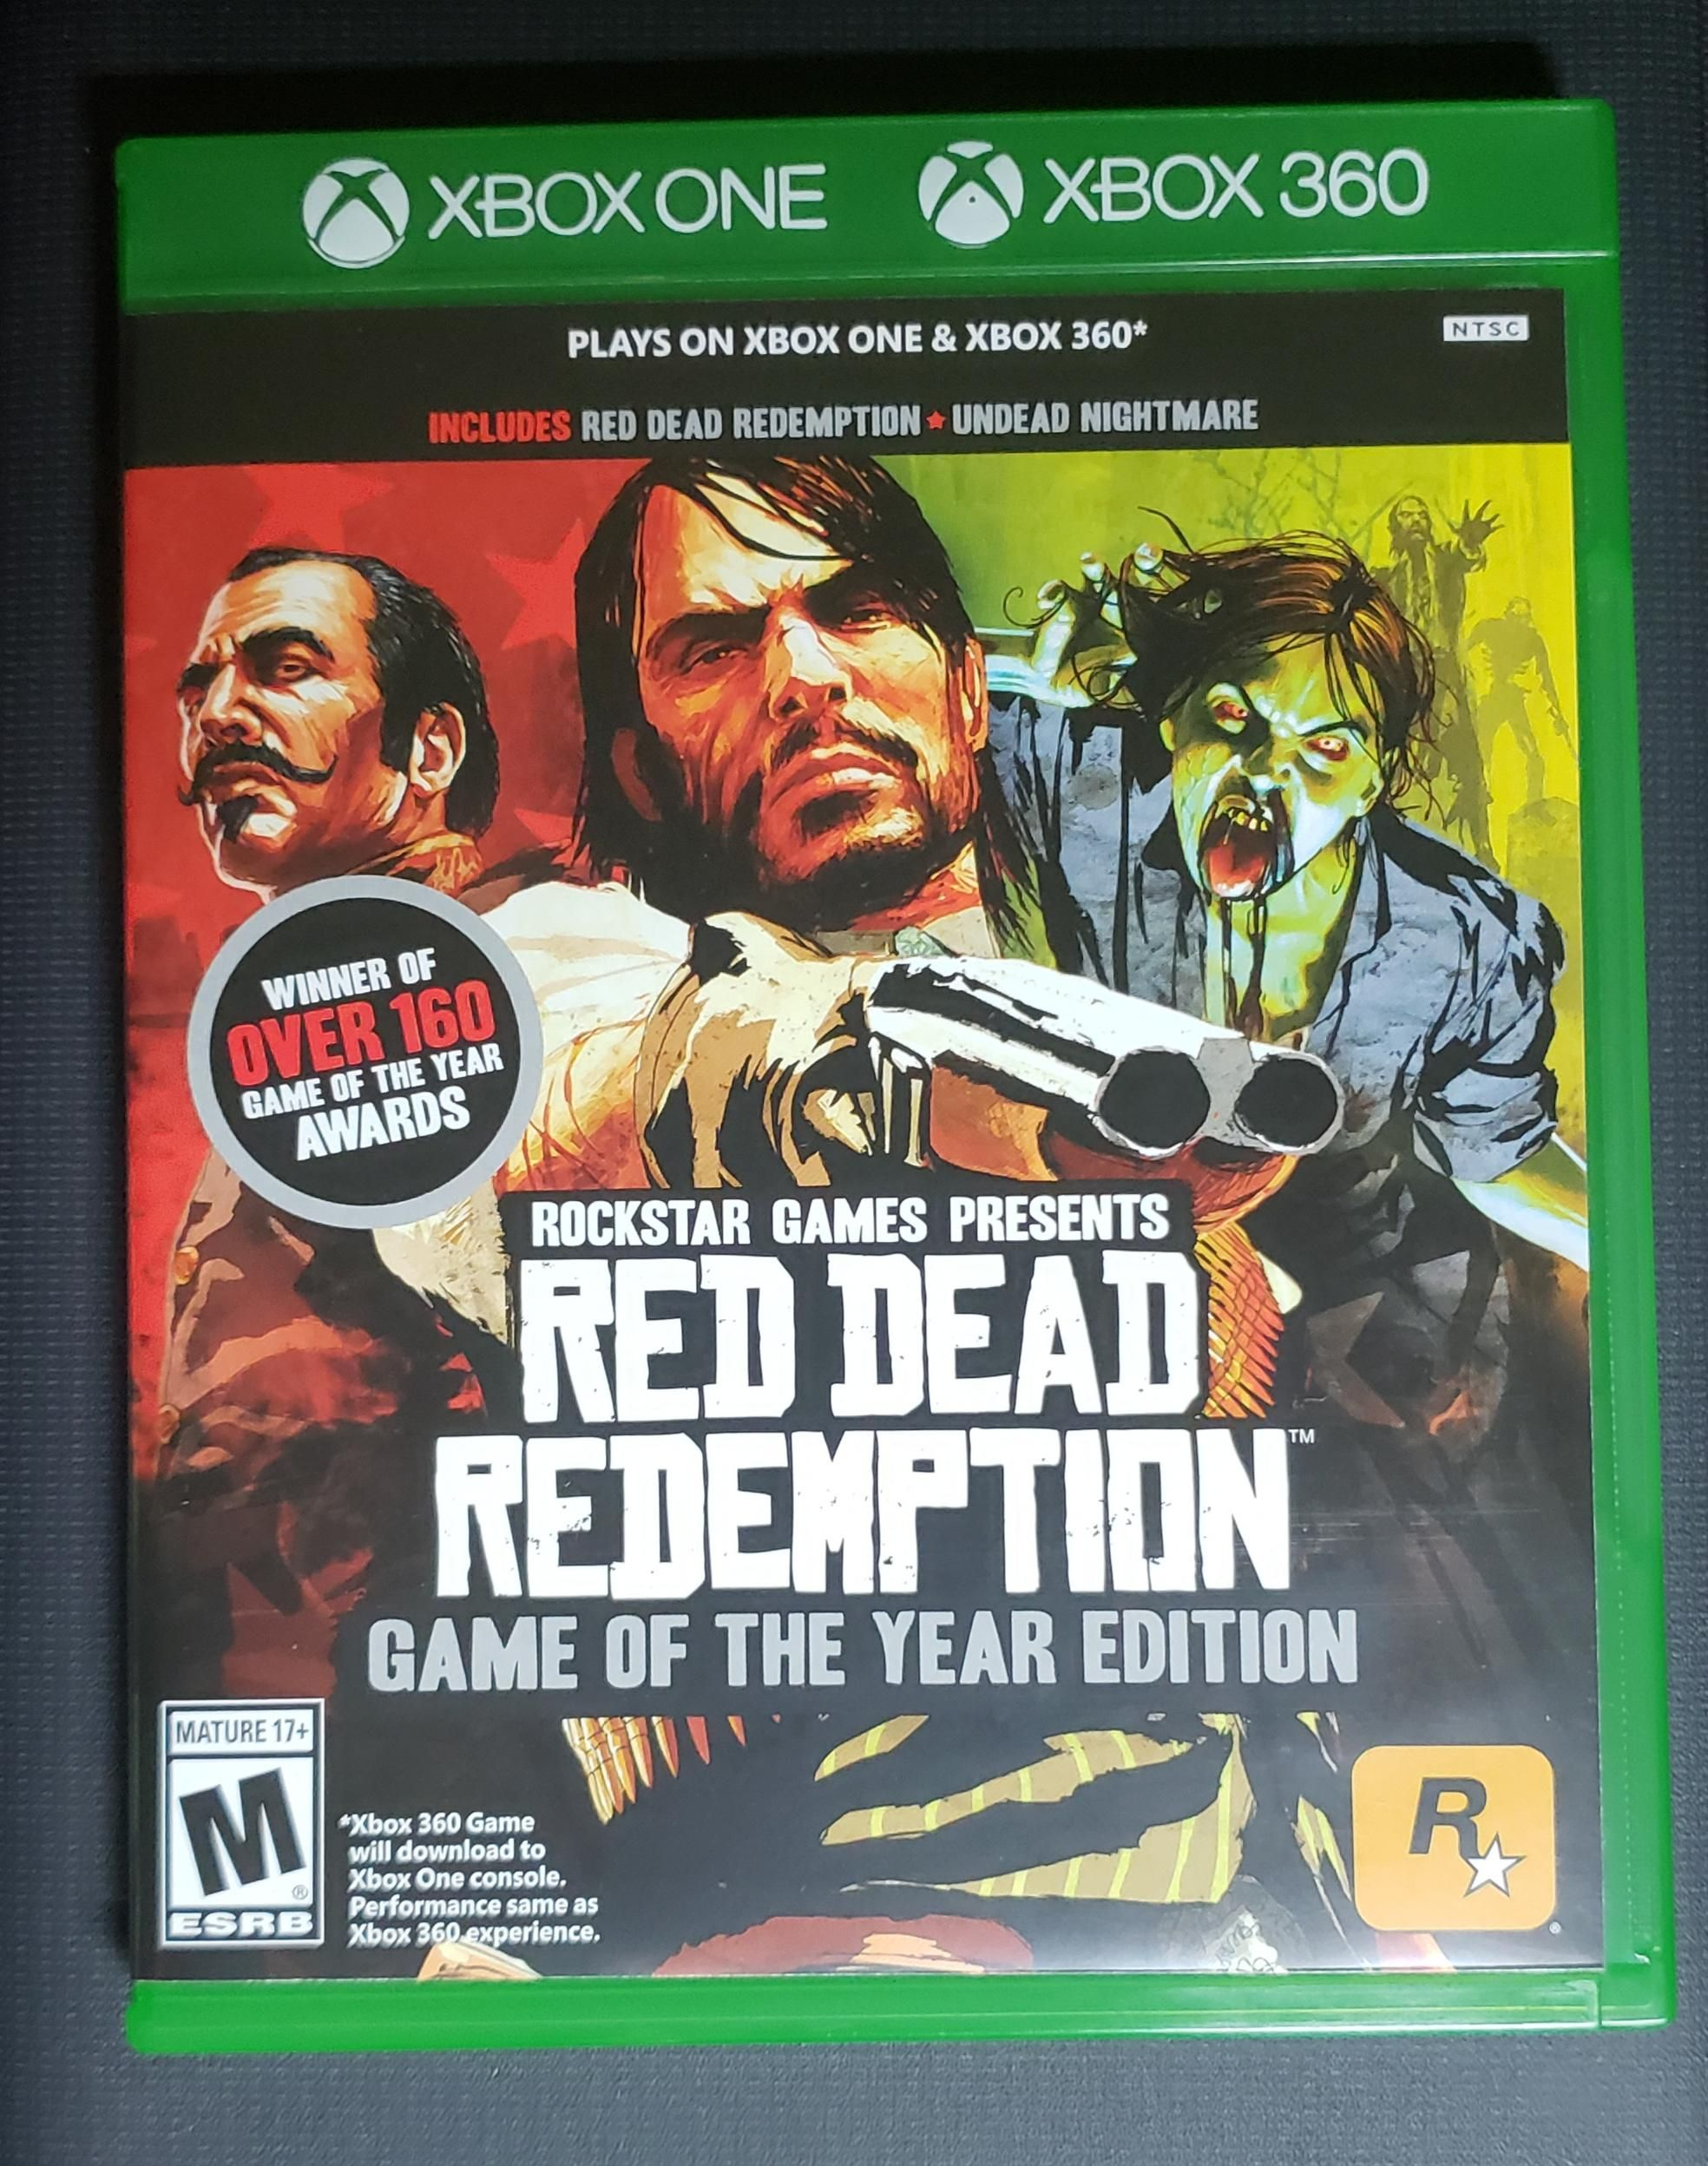 Finished Red Dead Redemption Ii So Decided To Pick Up Rdr I Https